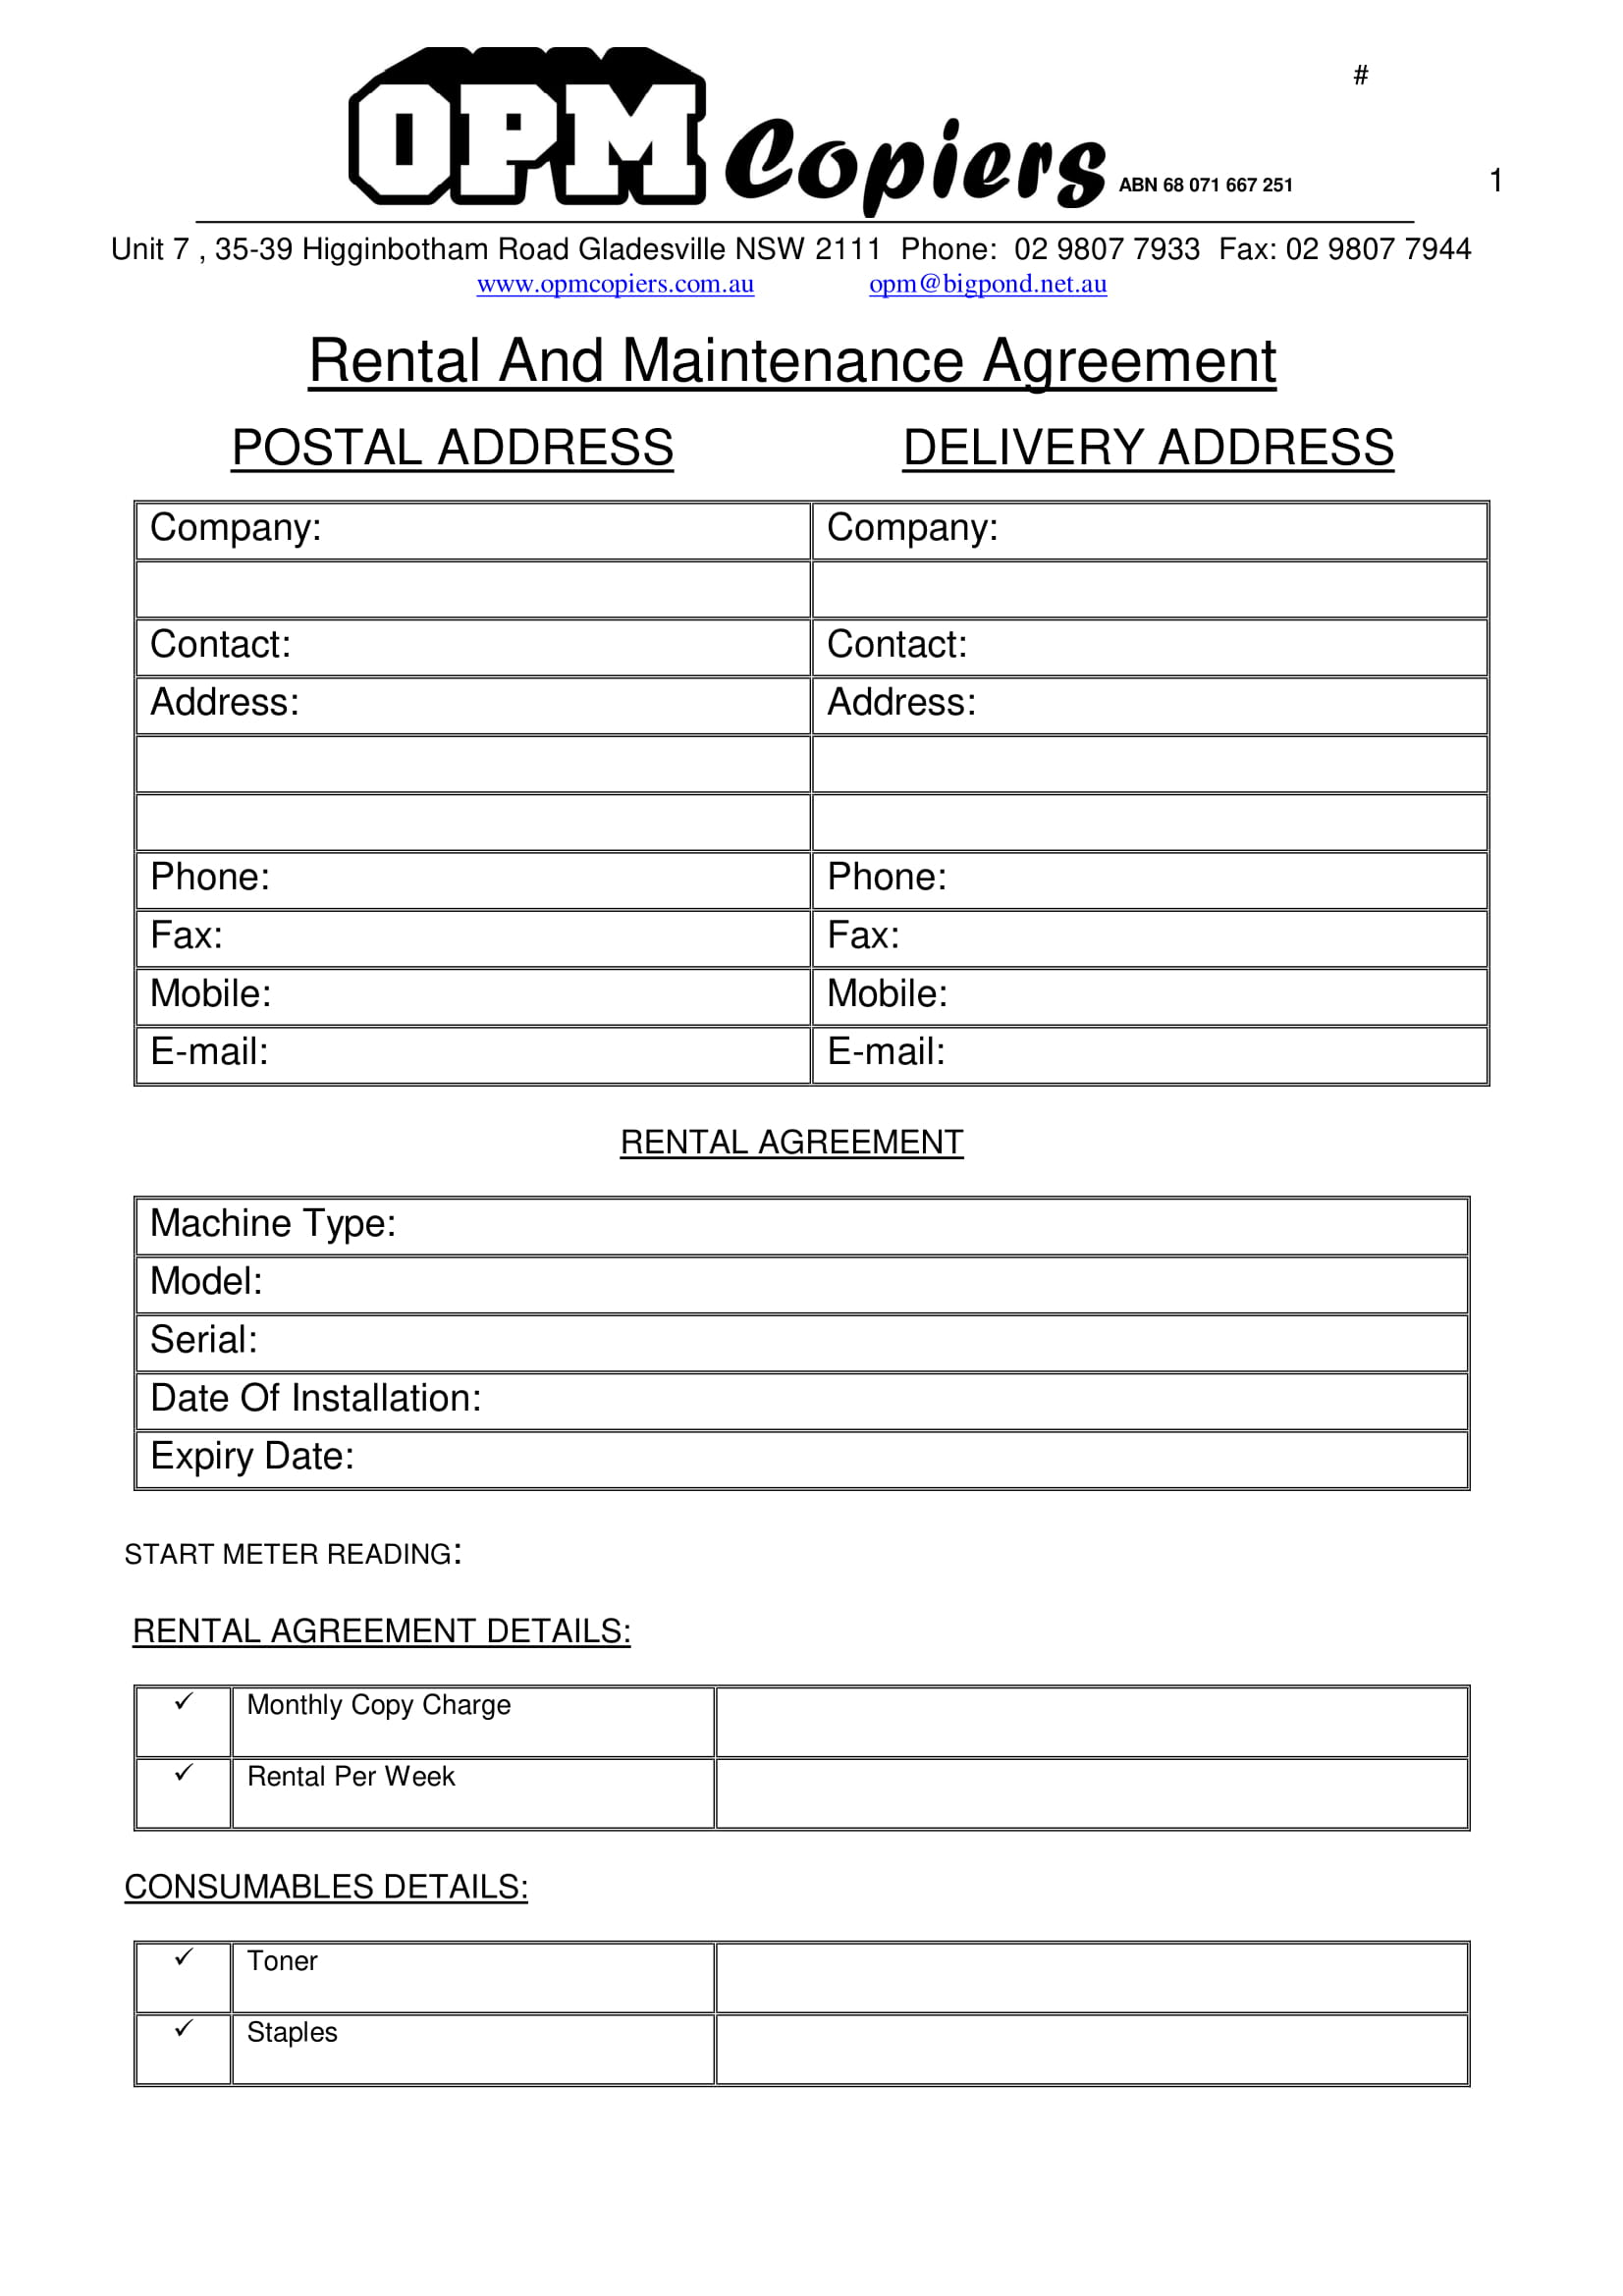 rental and maintenance agreement